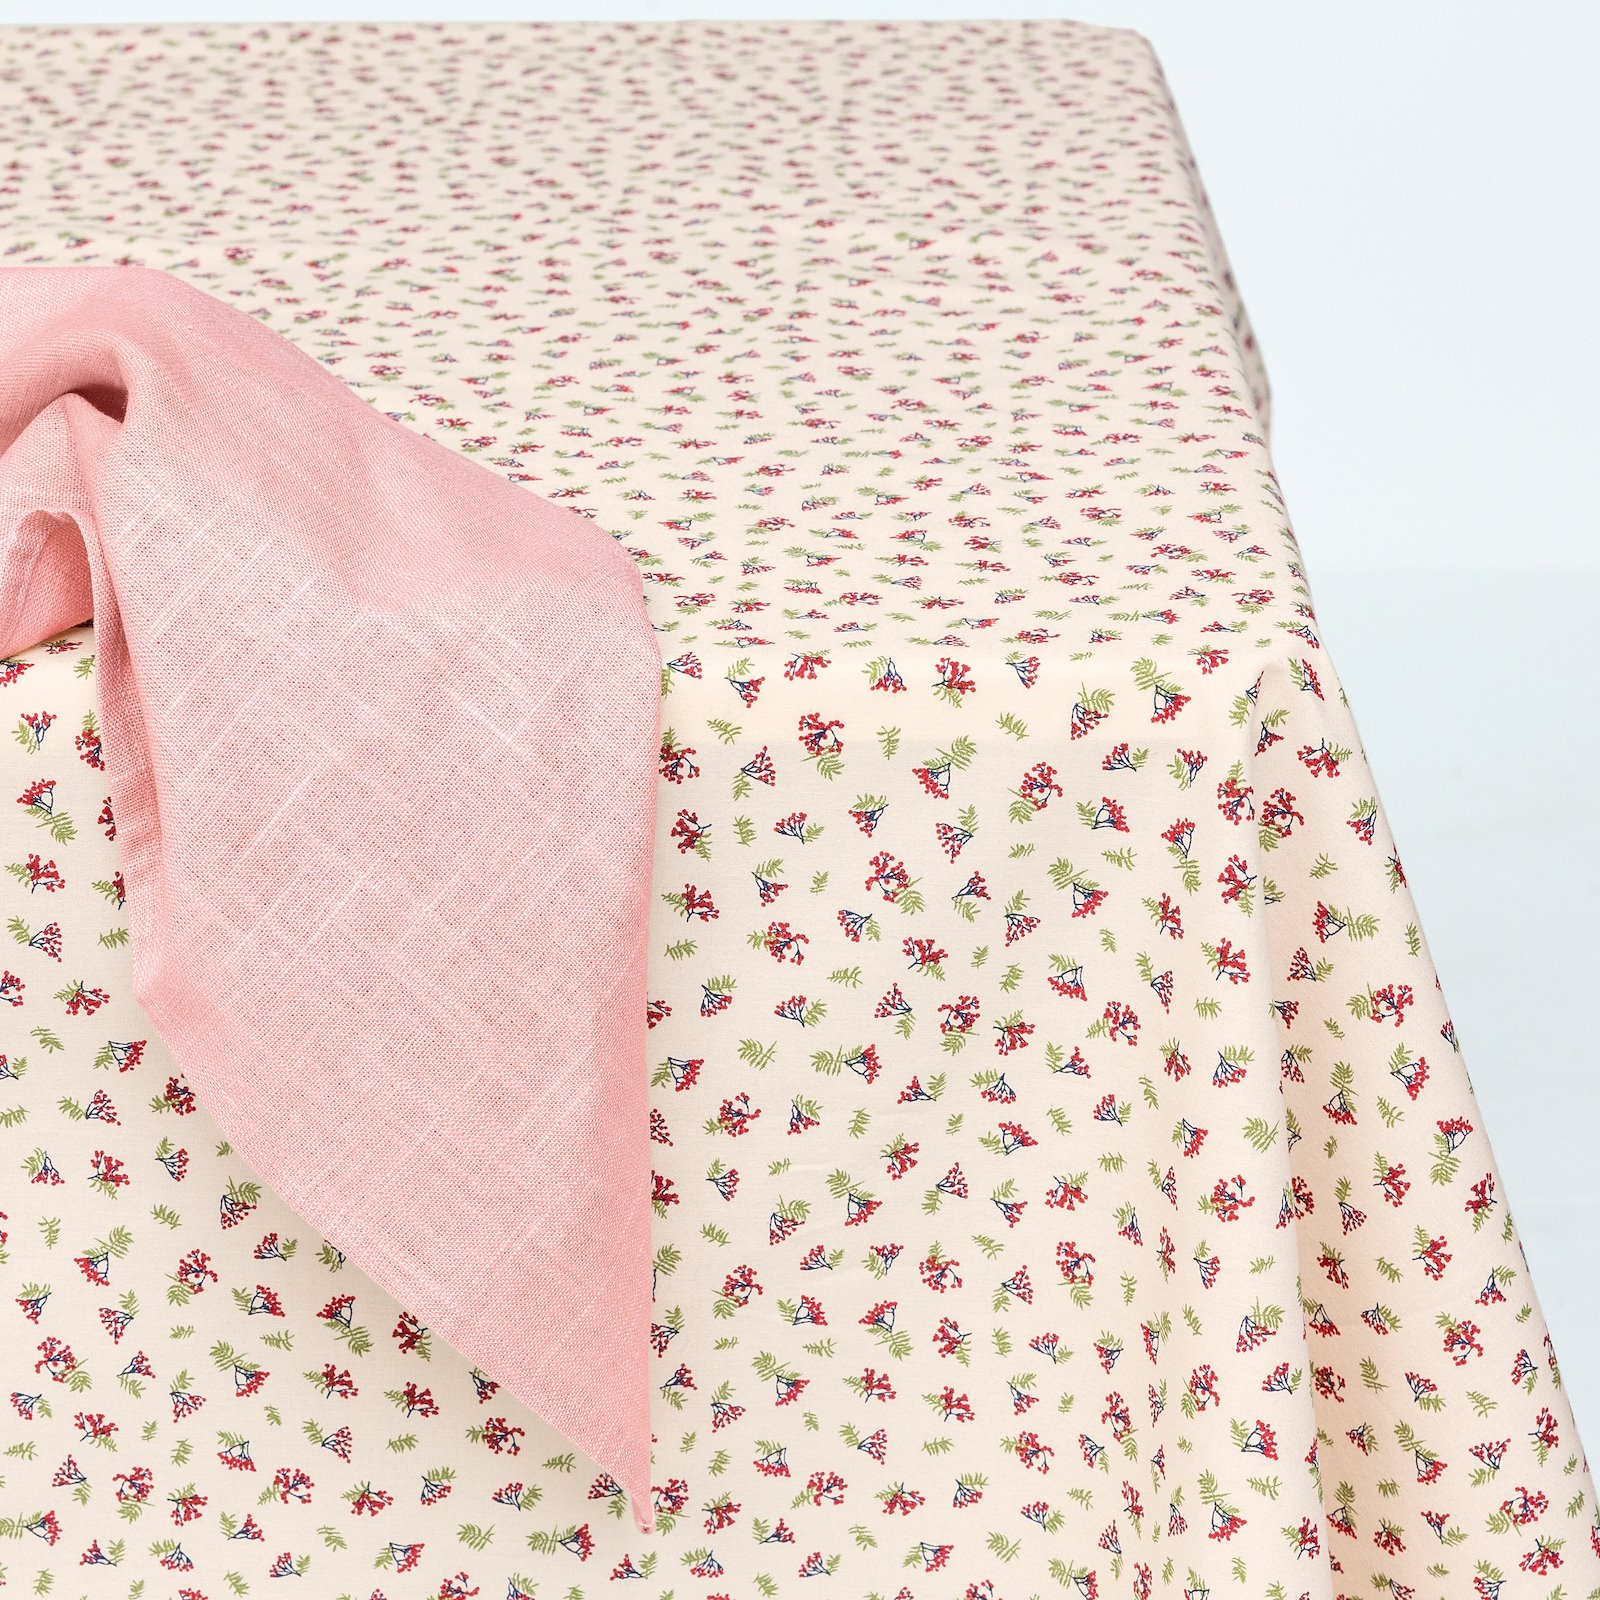 Woven oil cloth offwhite w red berries 866133_DIY8003_410140_bundle